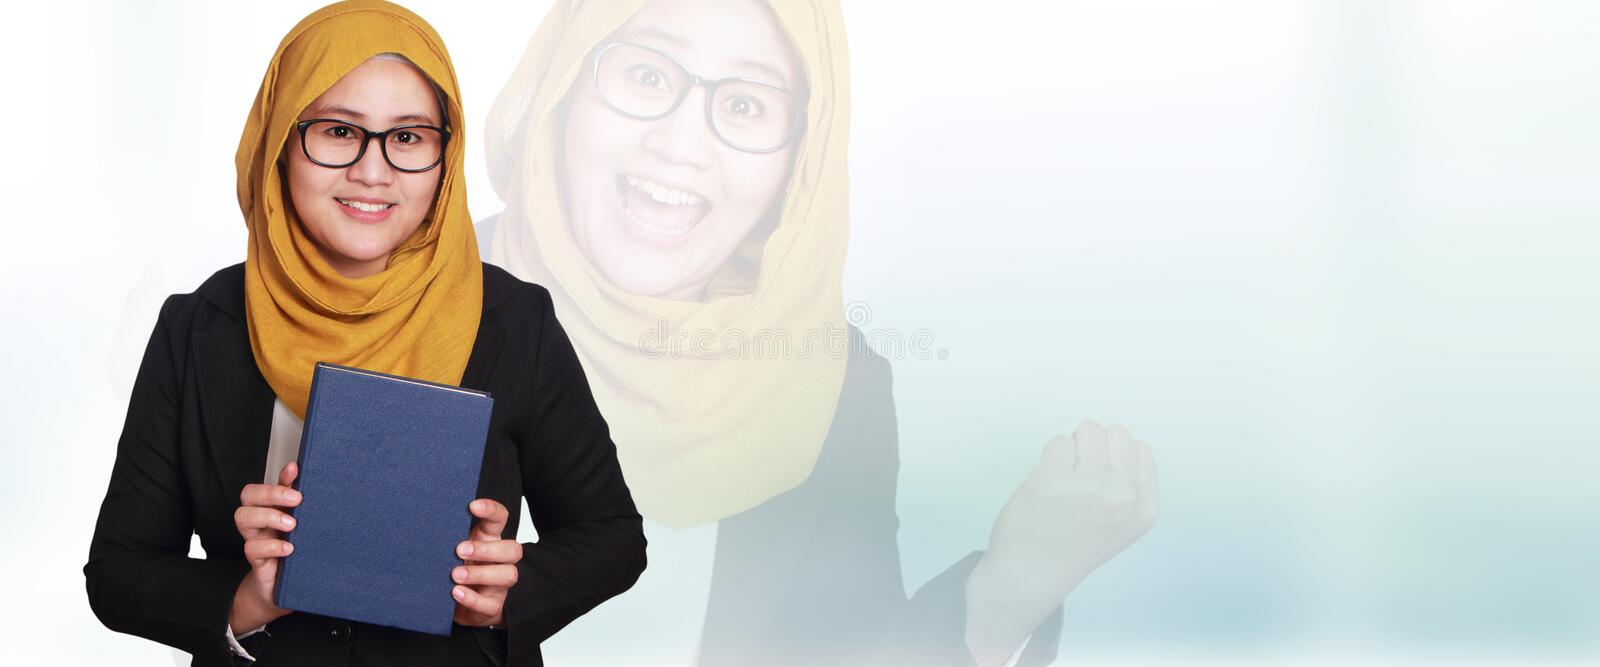 Muslimah Businesswoman Smiling, Holding Book stock images